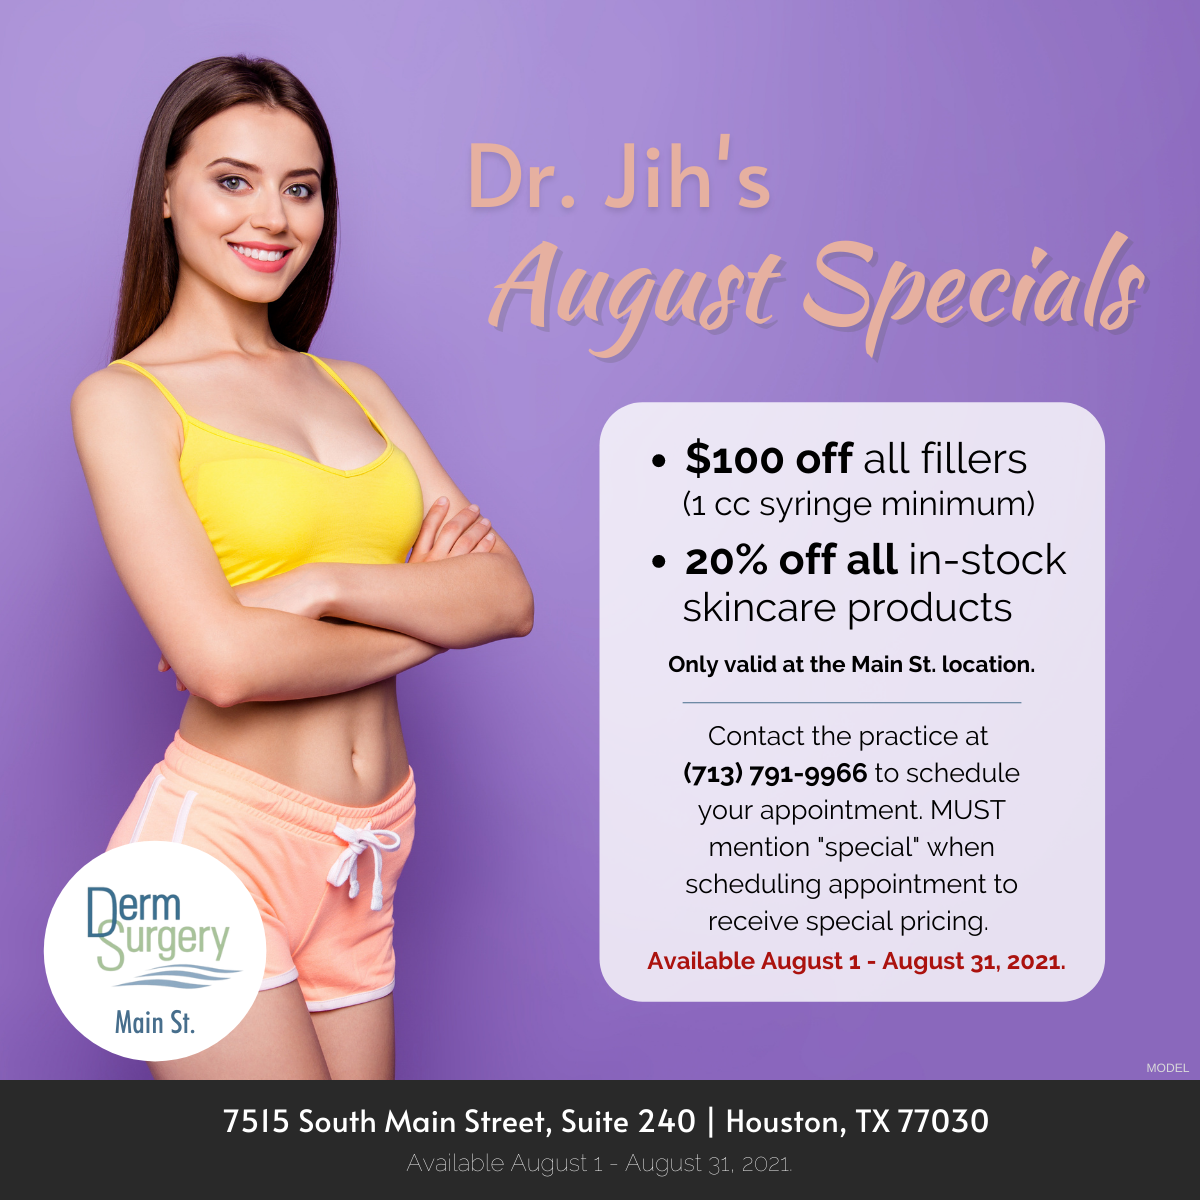 Dr. Jih's August Specials